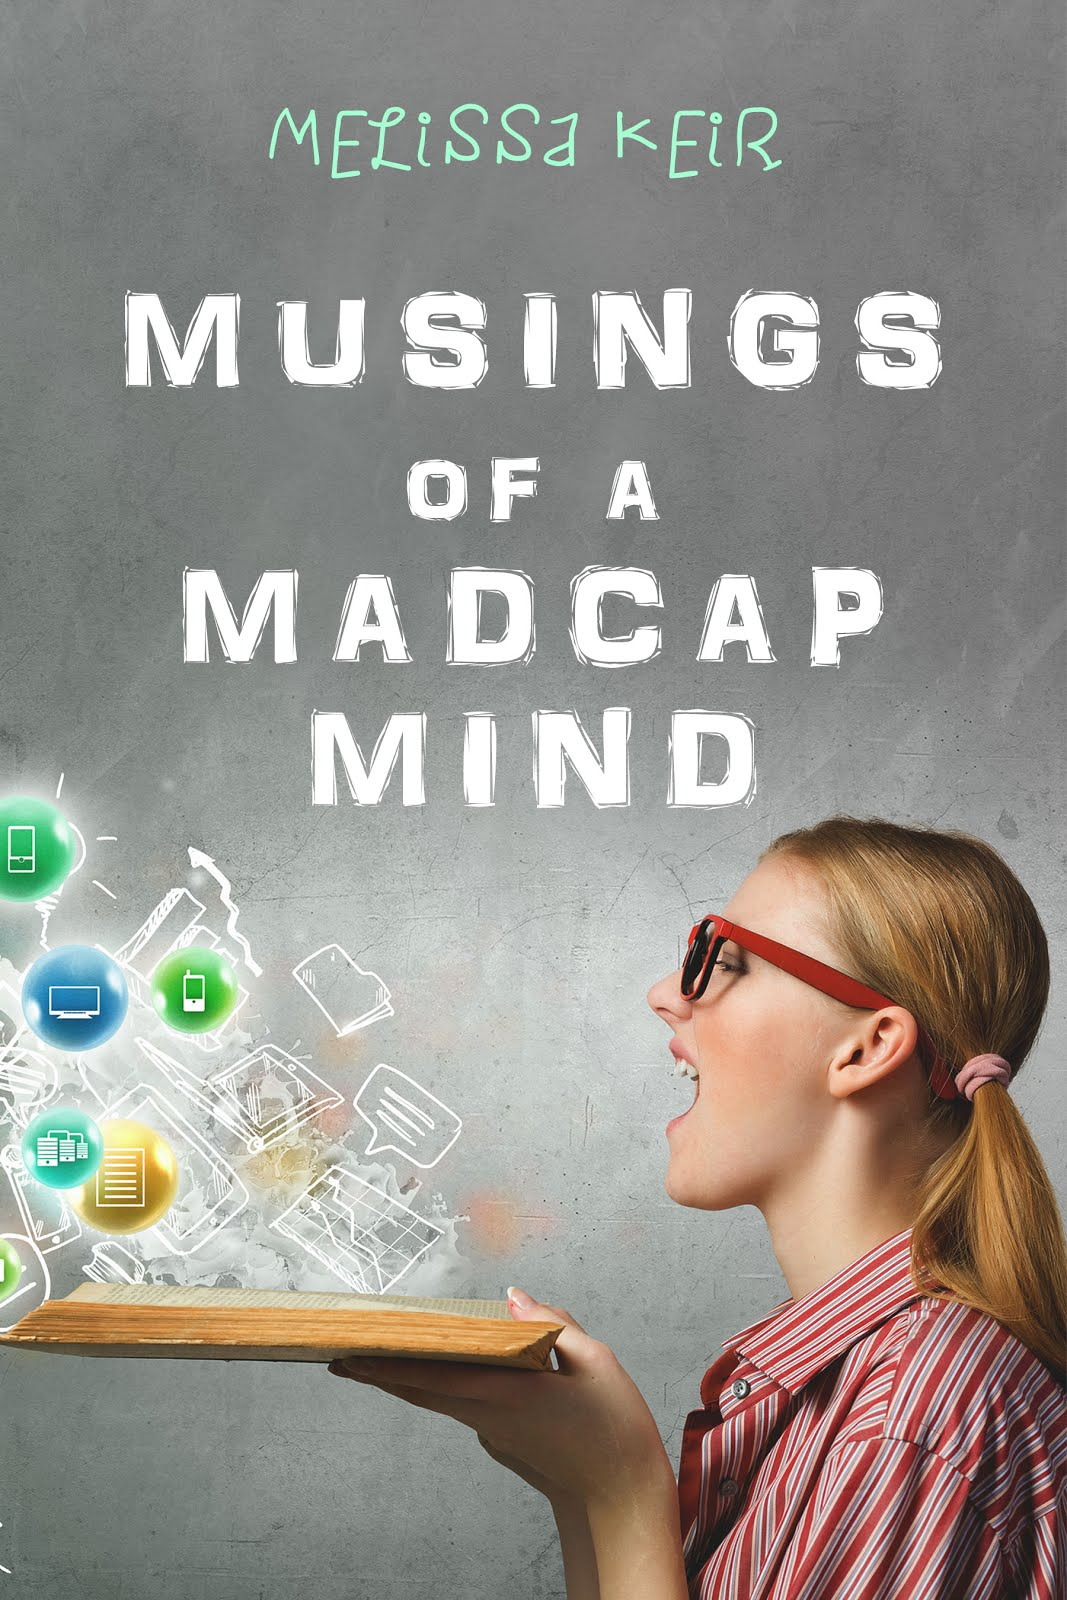 Musings of a Madcap Mind